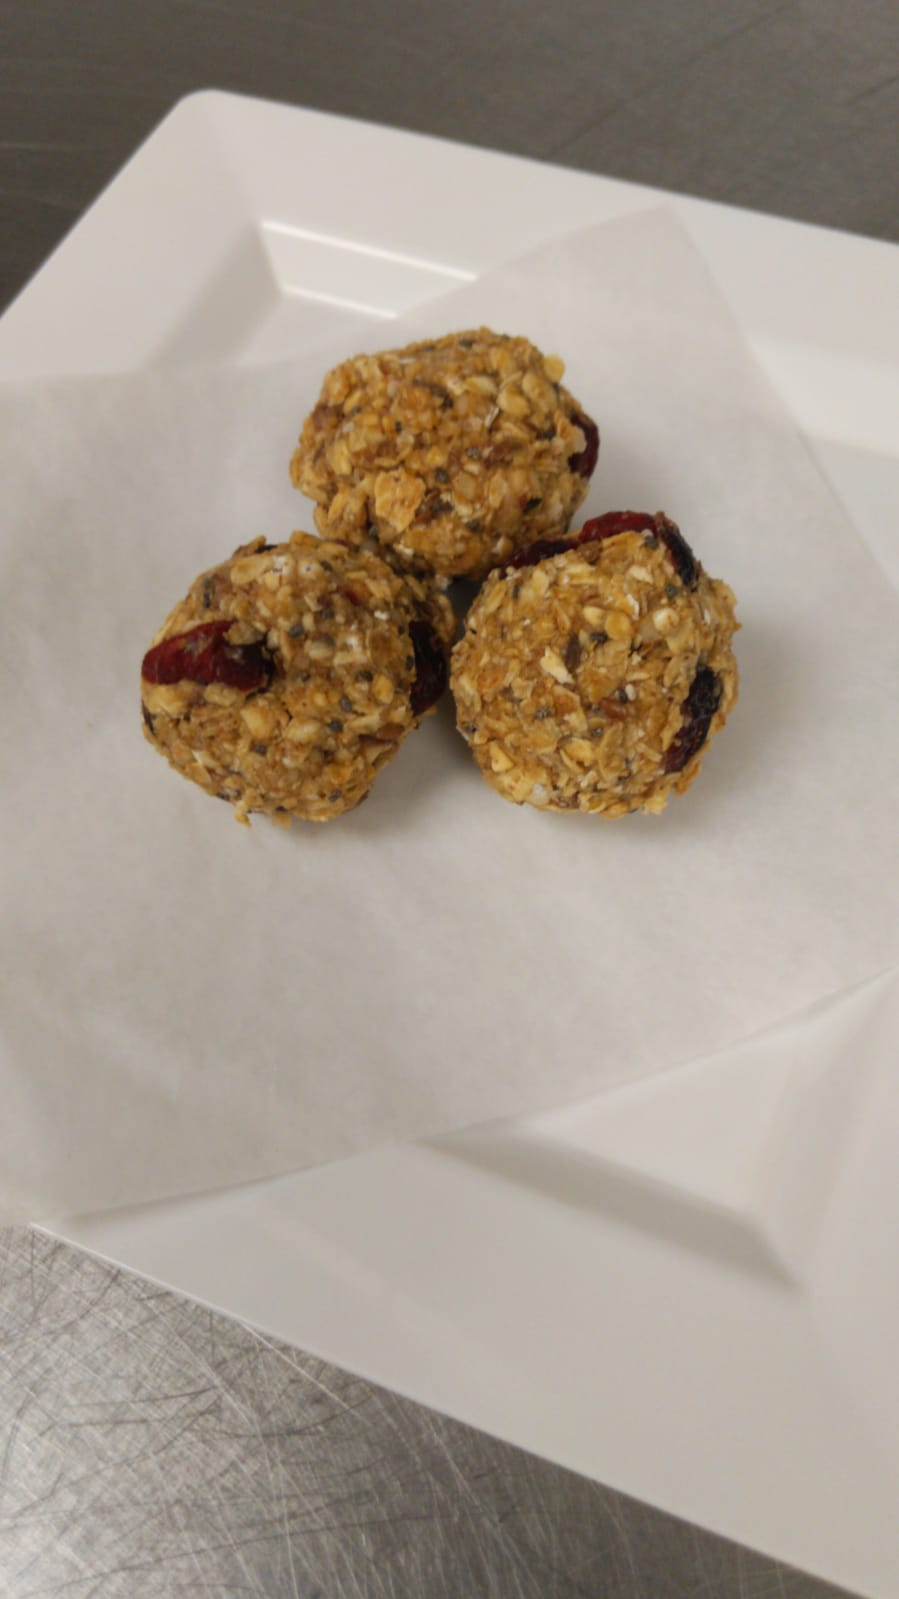 Oatmeal Raisin Protein Power Balls